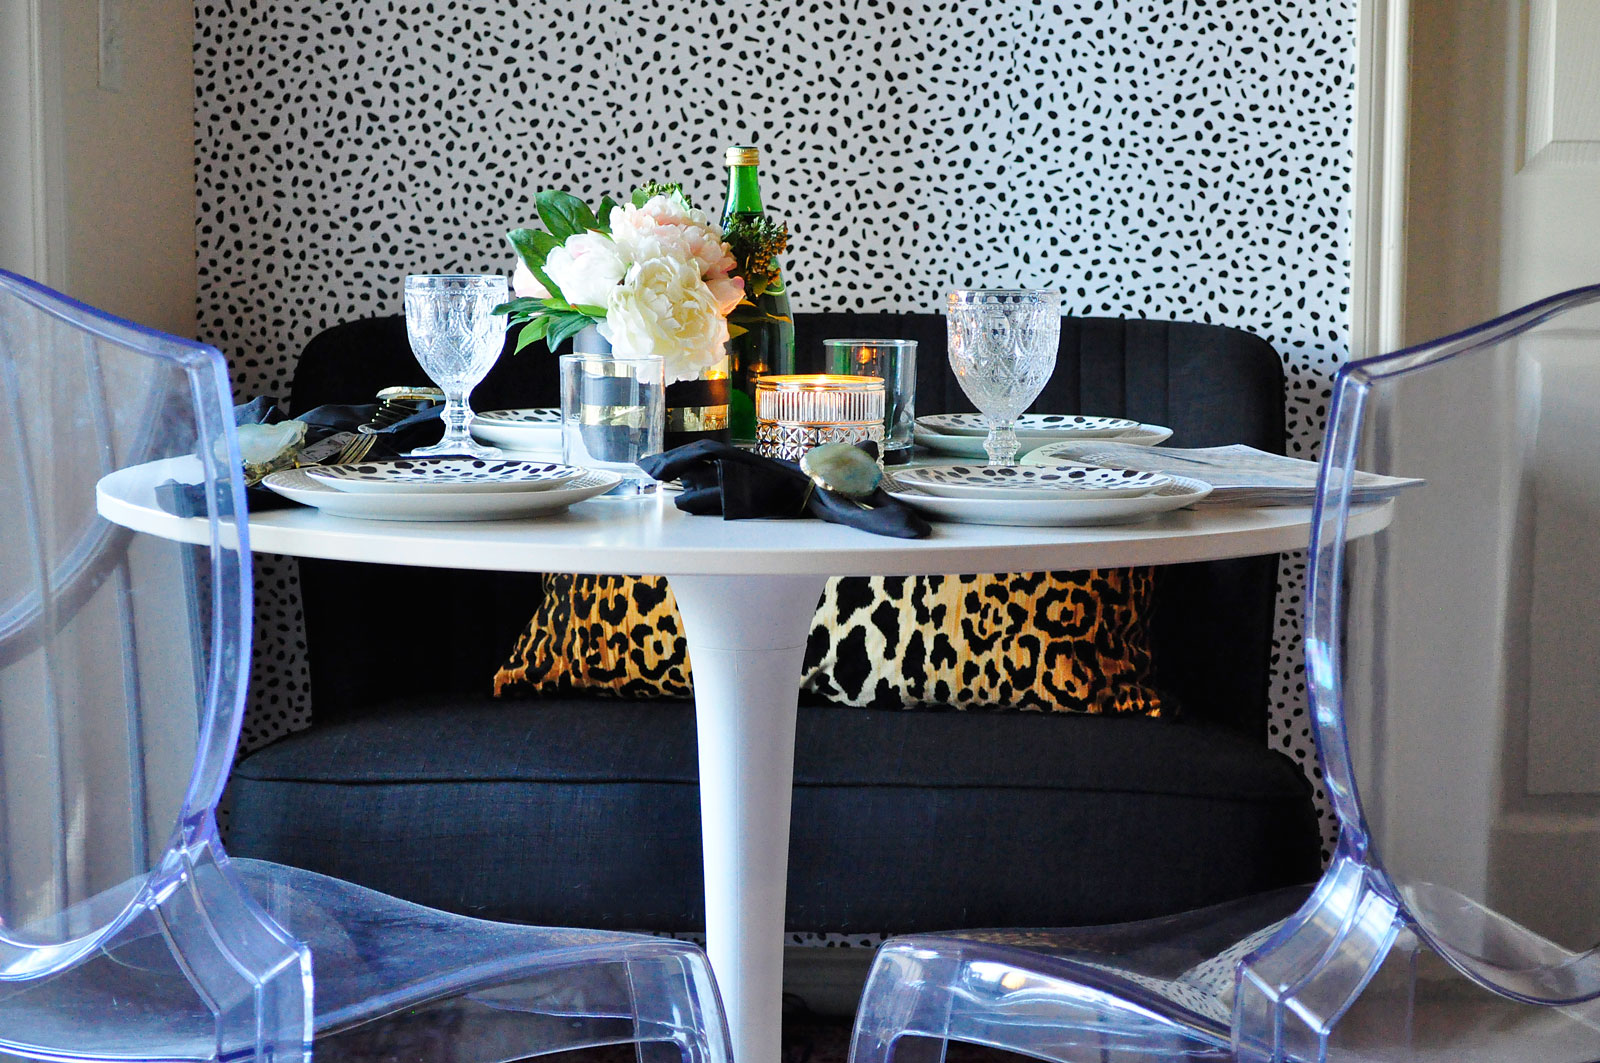 Black and white temporary wallpaper in a small dining room space with glam and eclectic decor.